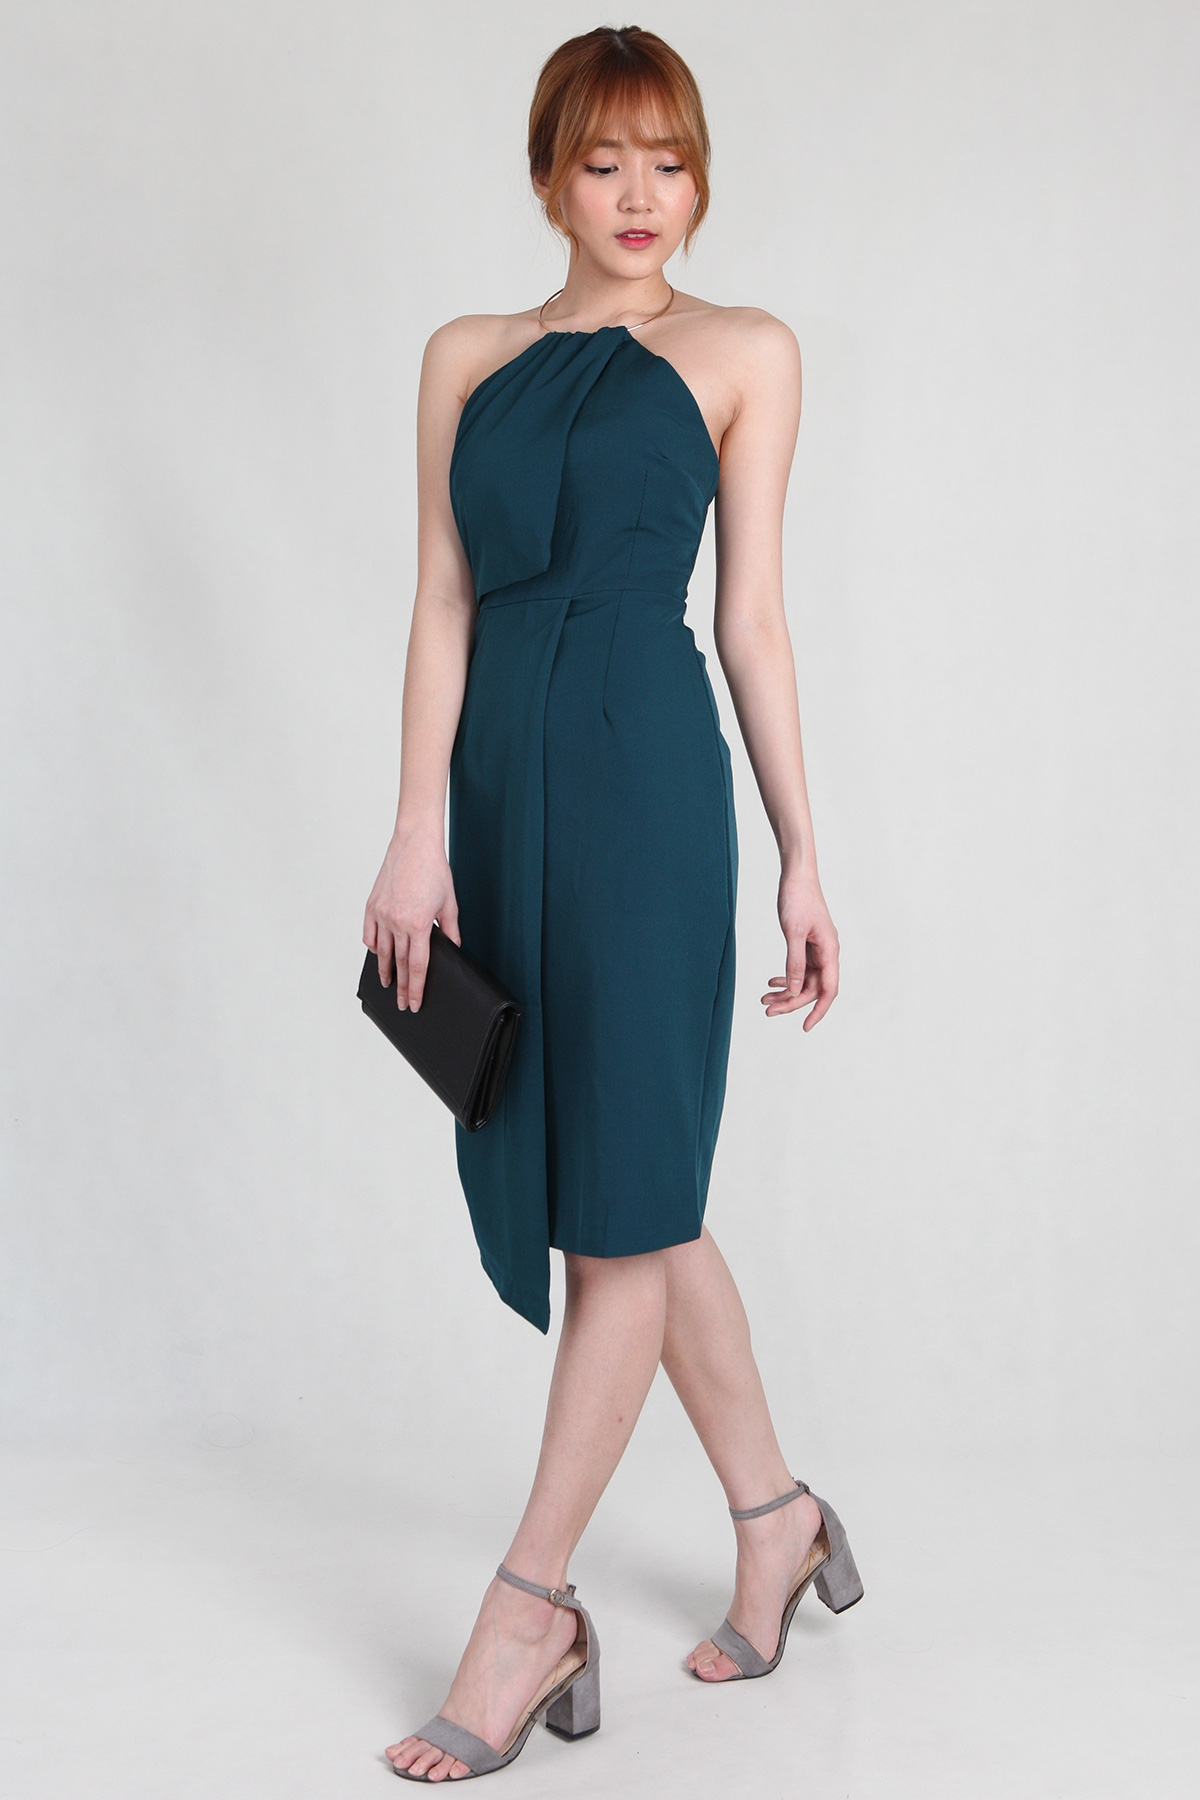 Grecian Metallic Collar Sheath Dress in Turquoise